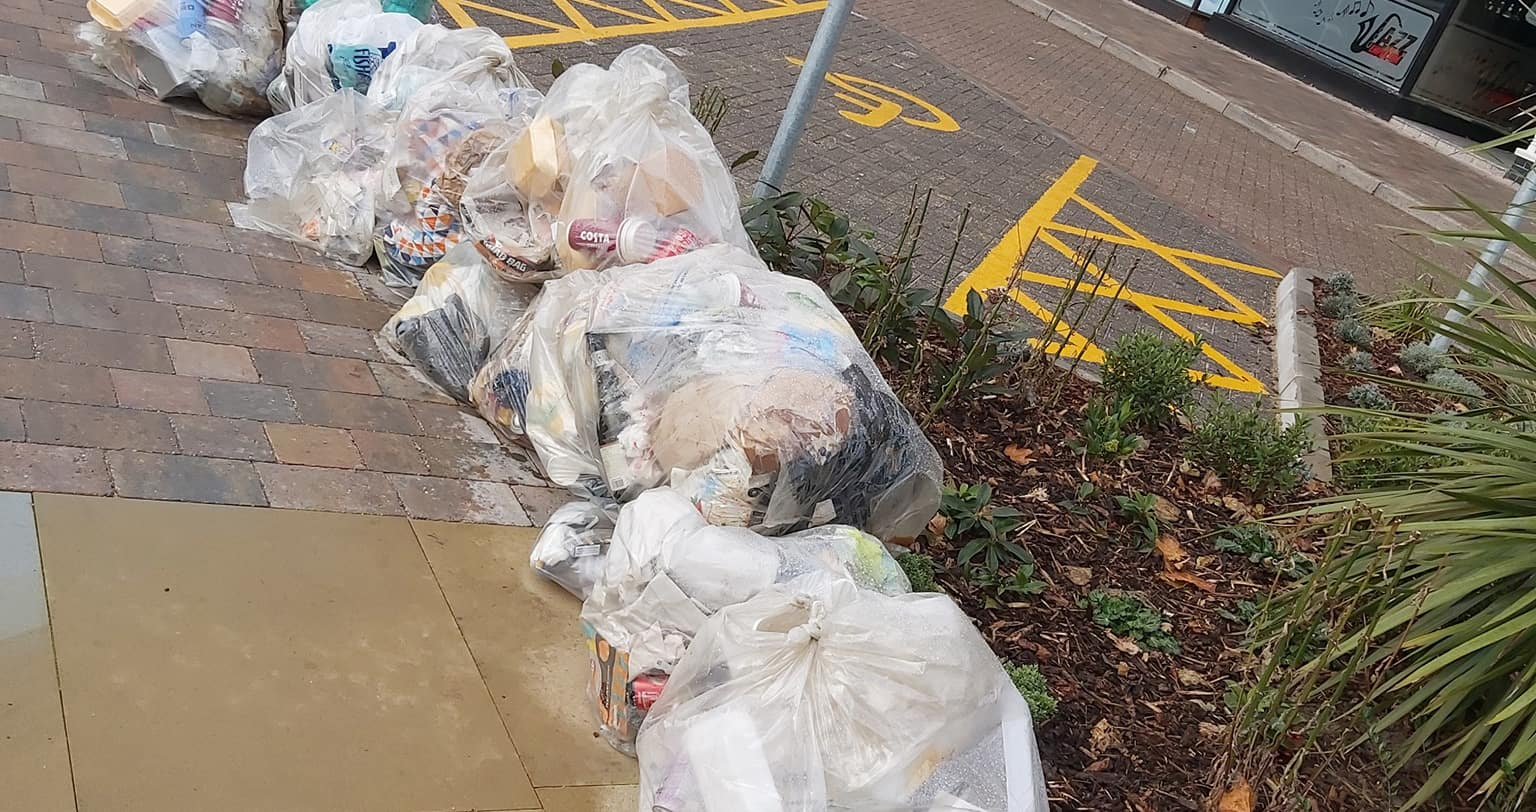 Ridiculous Rubbish Pile Up Adds to Wood Street Woes